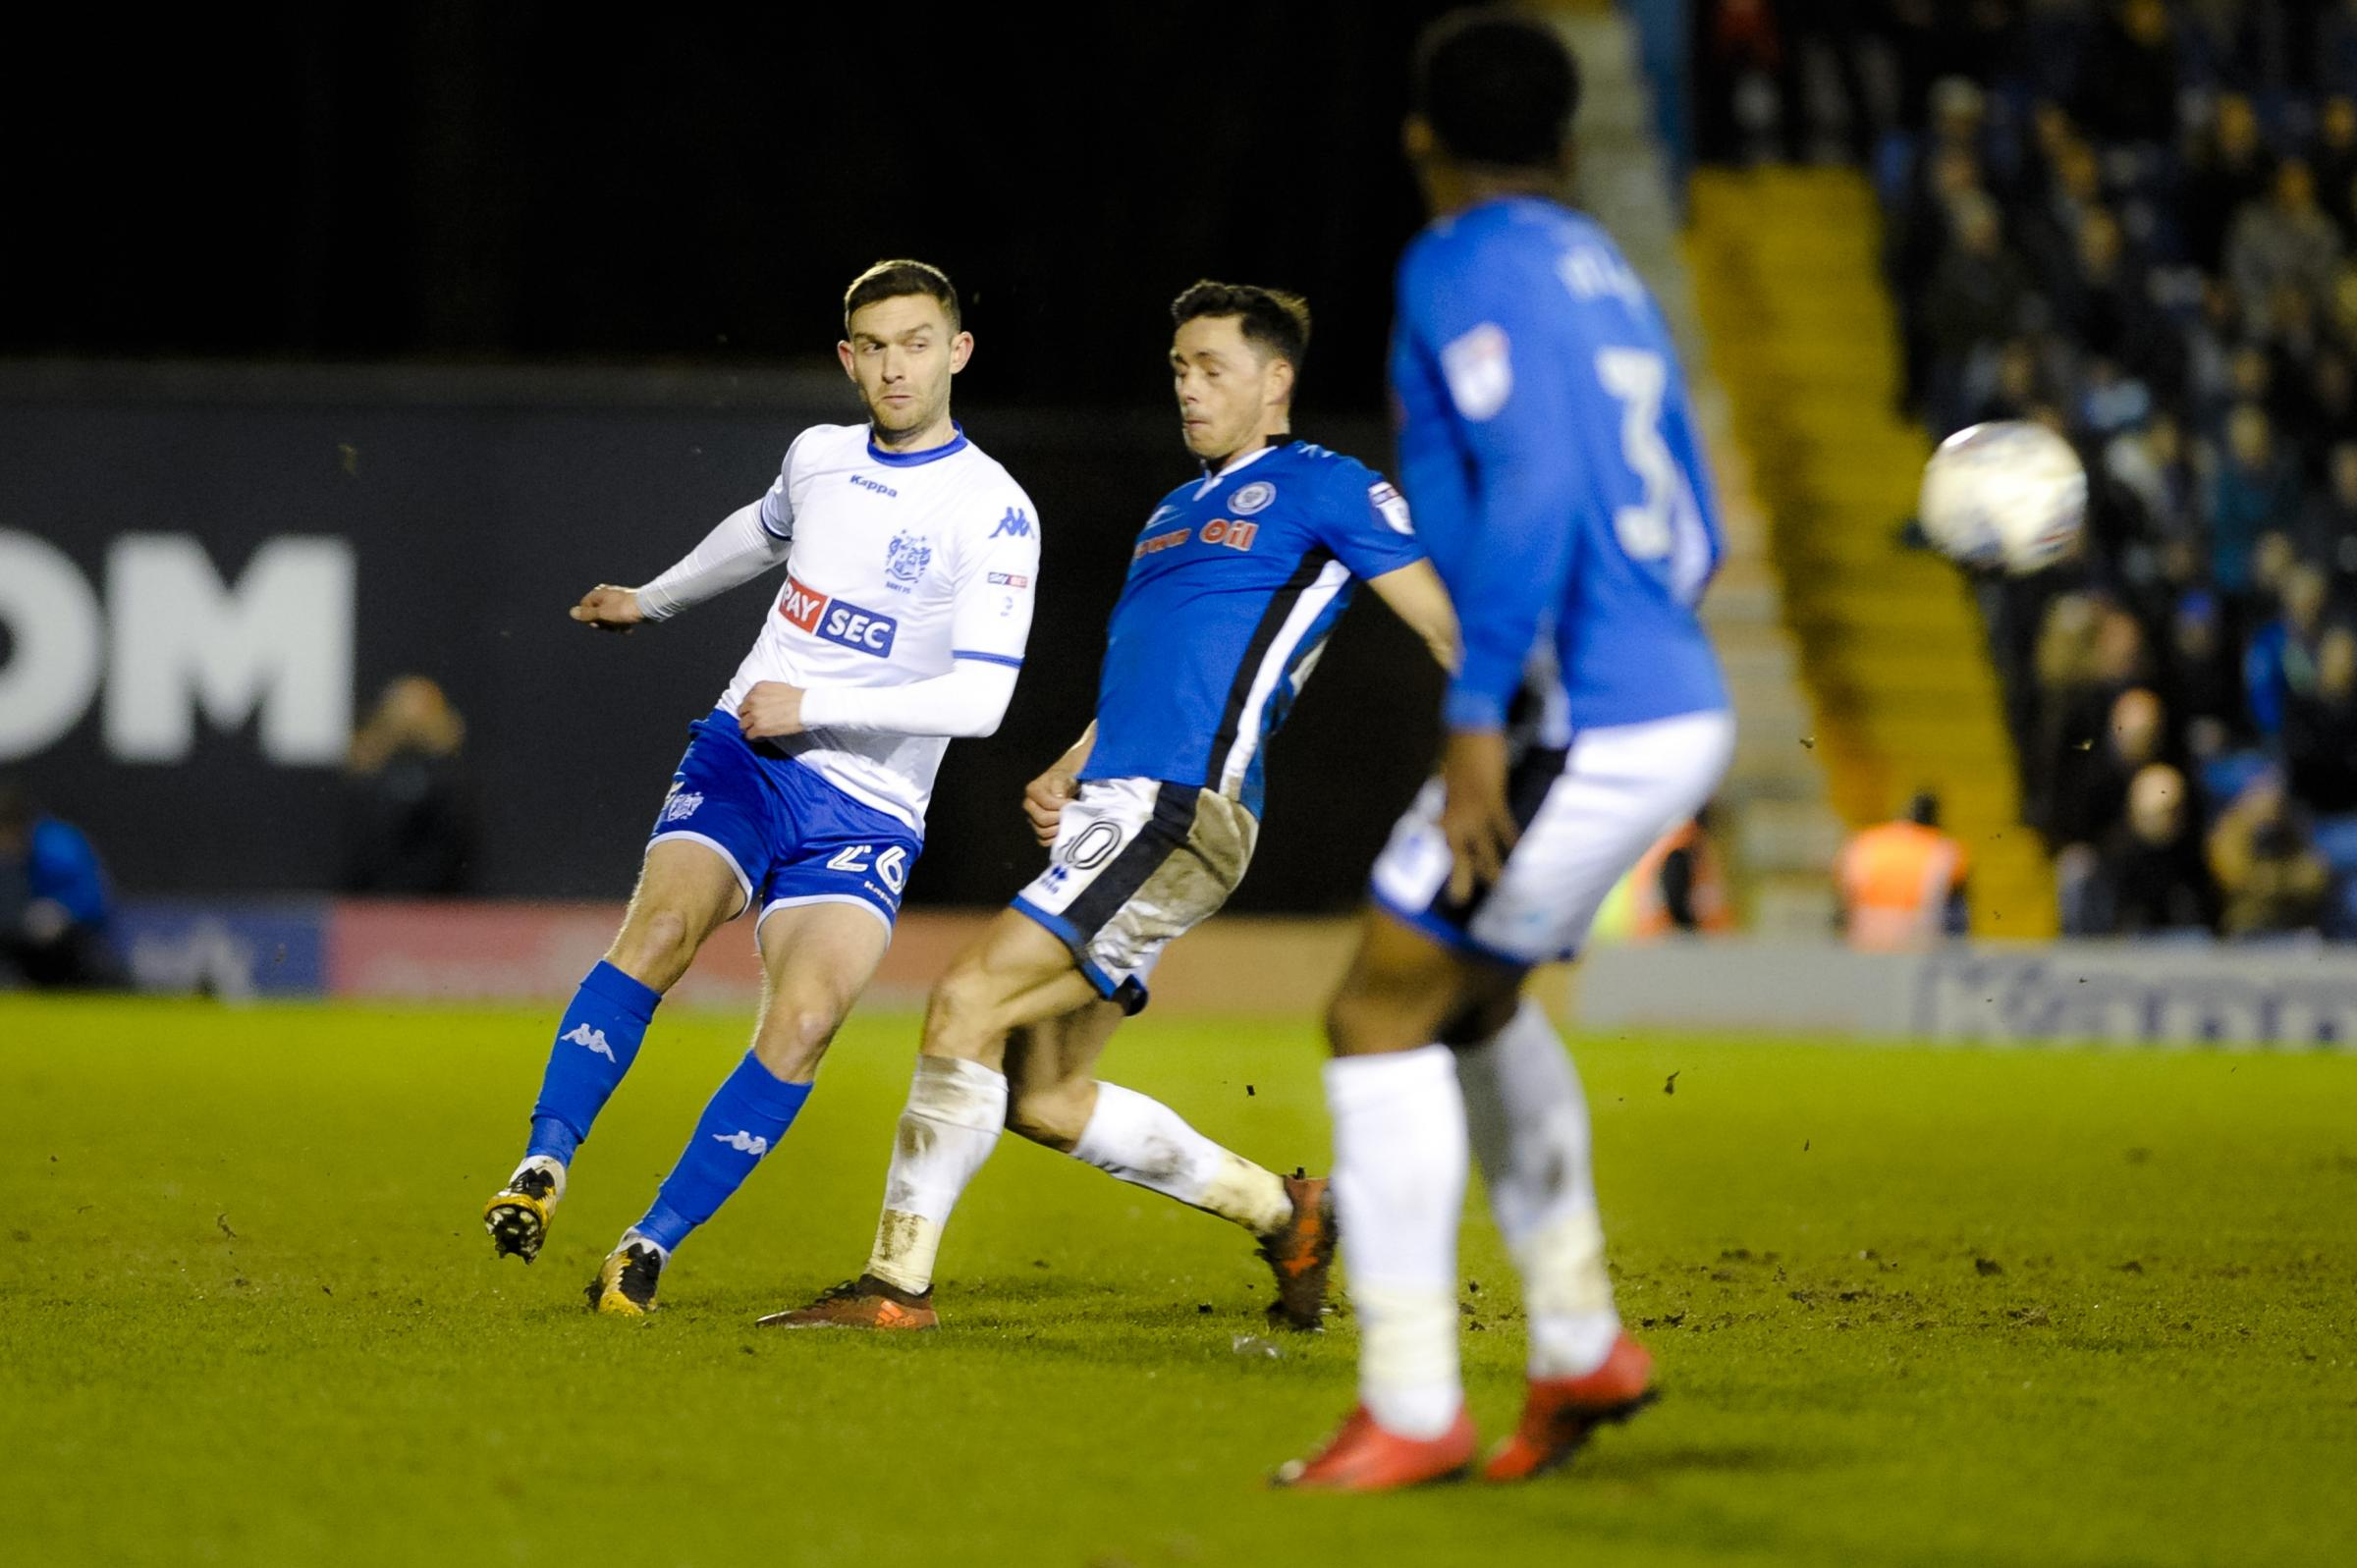 Bury midfielder Jay O'Shea under pressure from Rochdale forward Ian Henderson. Picture: Andy Whitehead